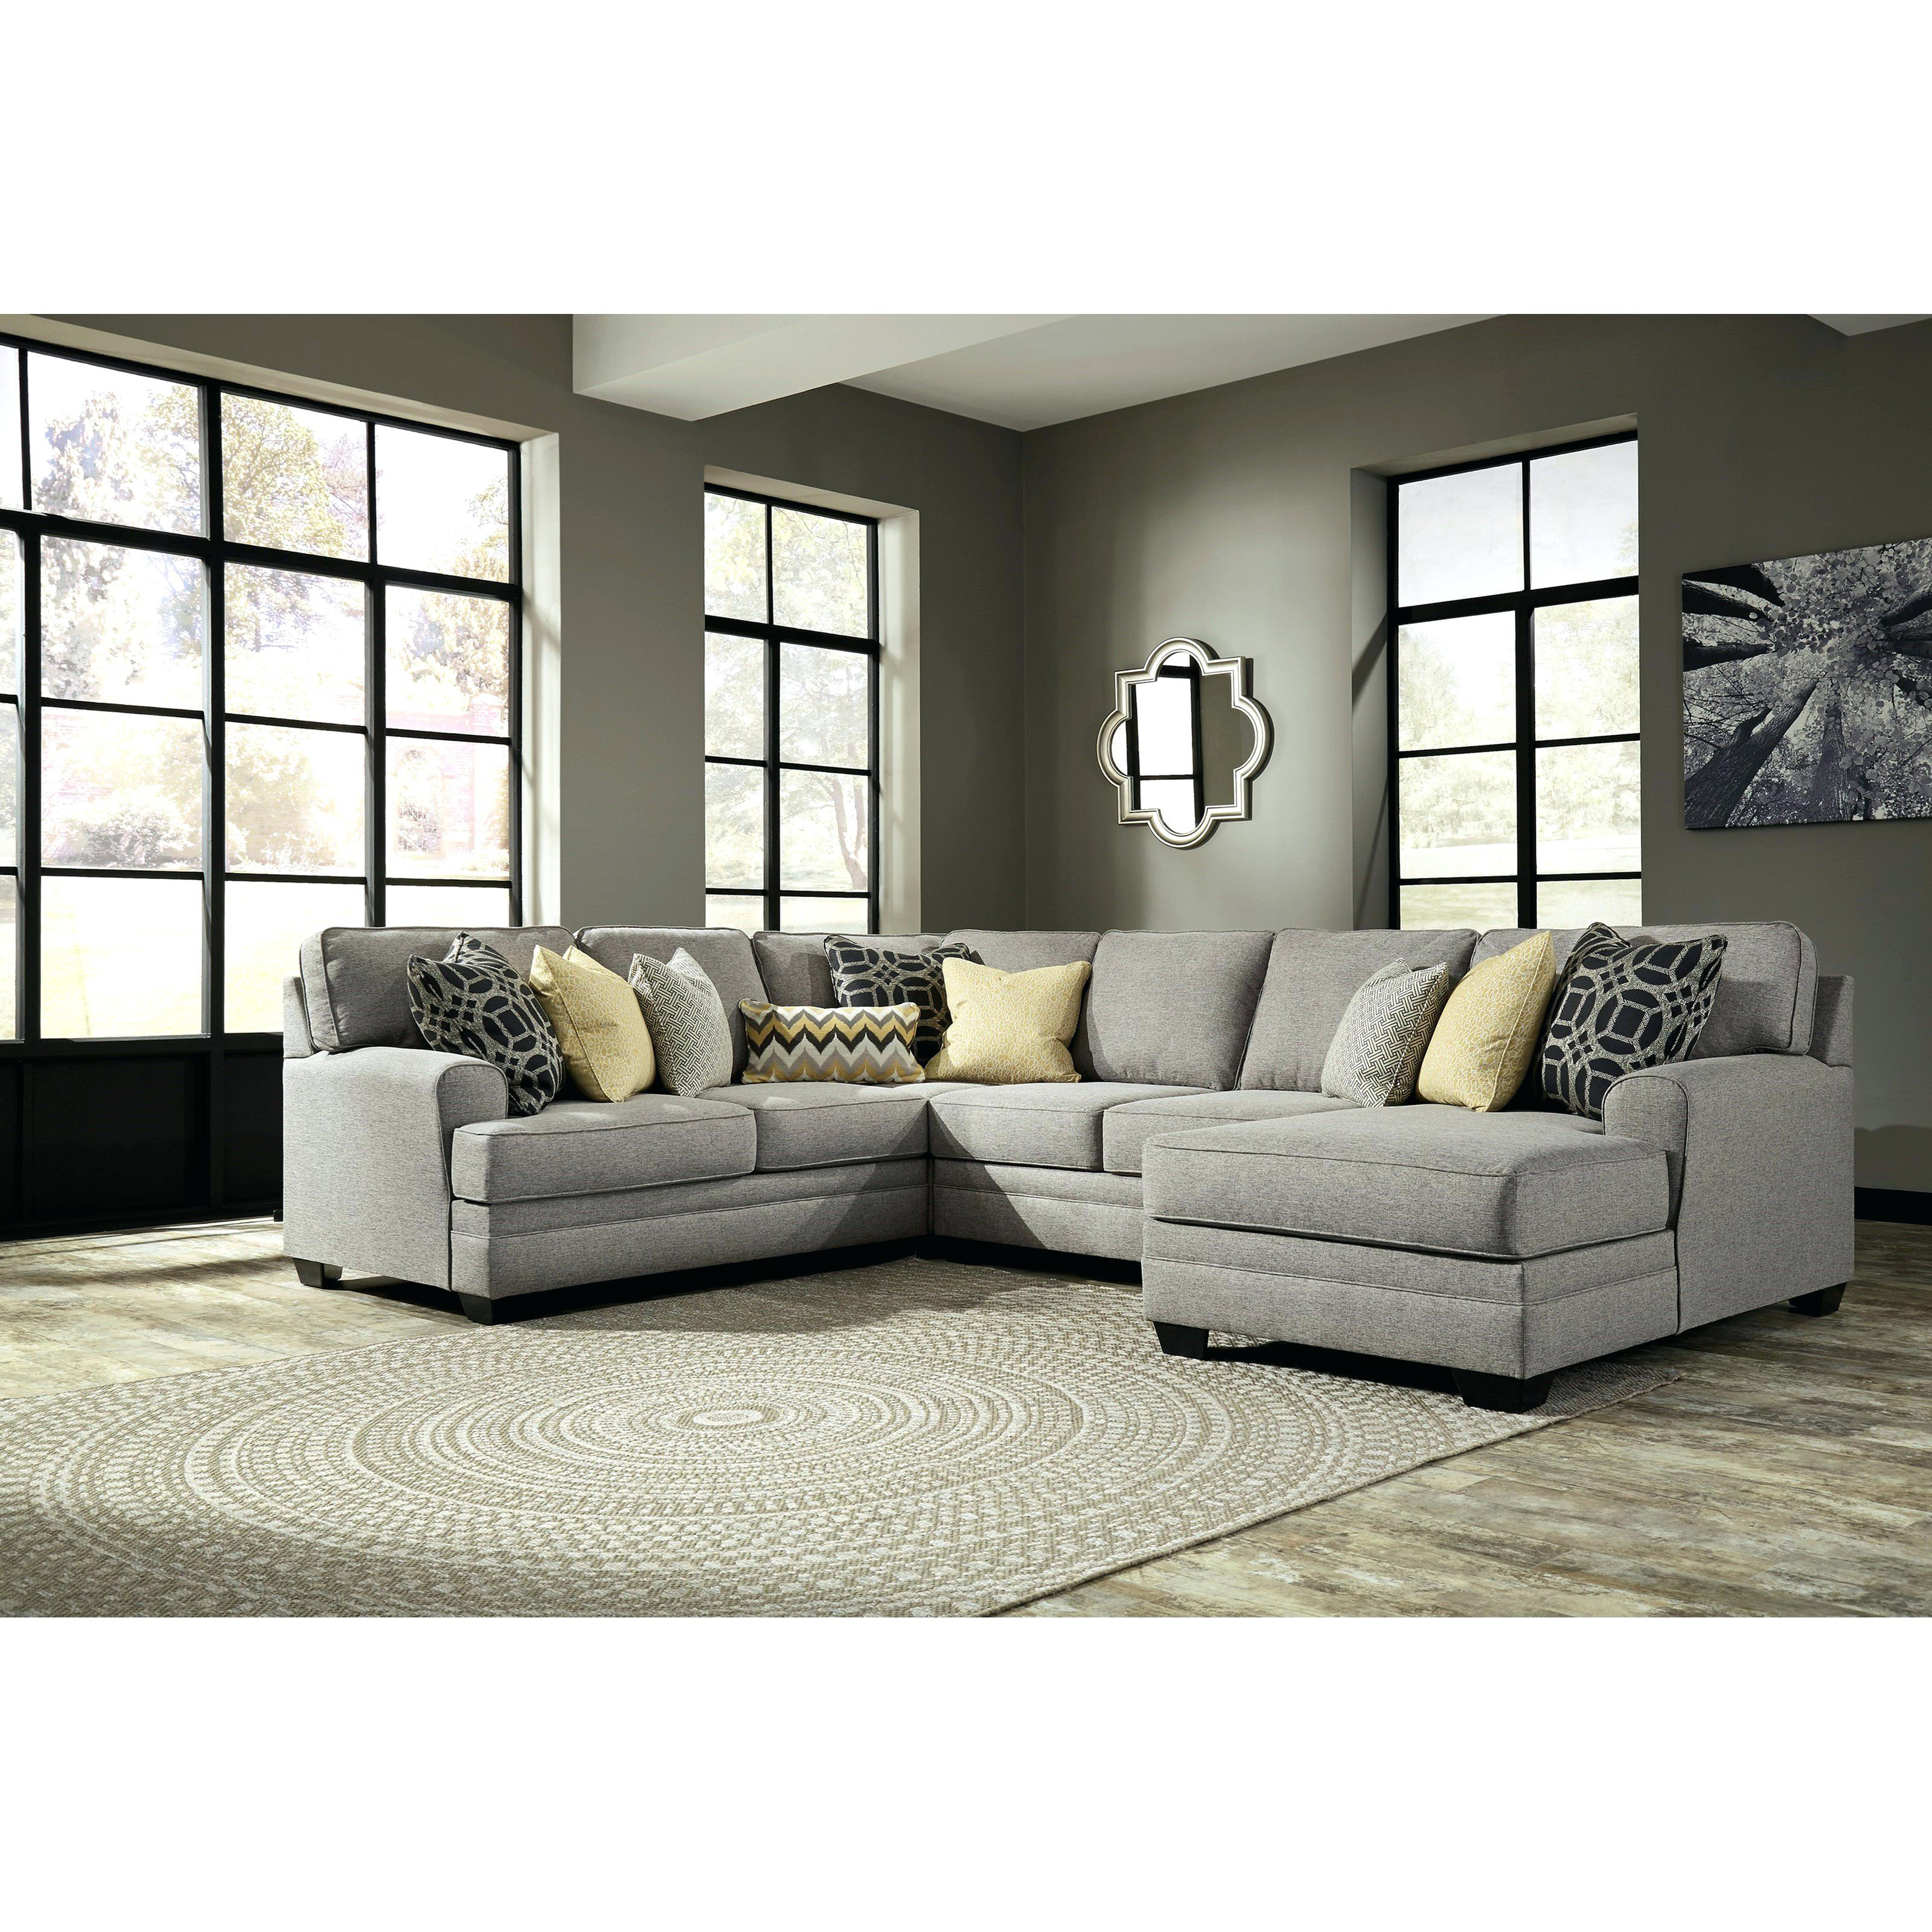 Alder 4 Piece Sectionals In Most Recent 4 Piece Sectional Couch – Formyouropinion (View 18 of 20)